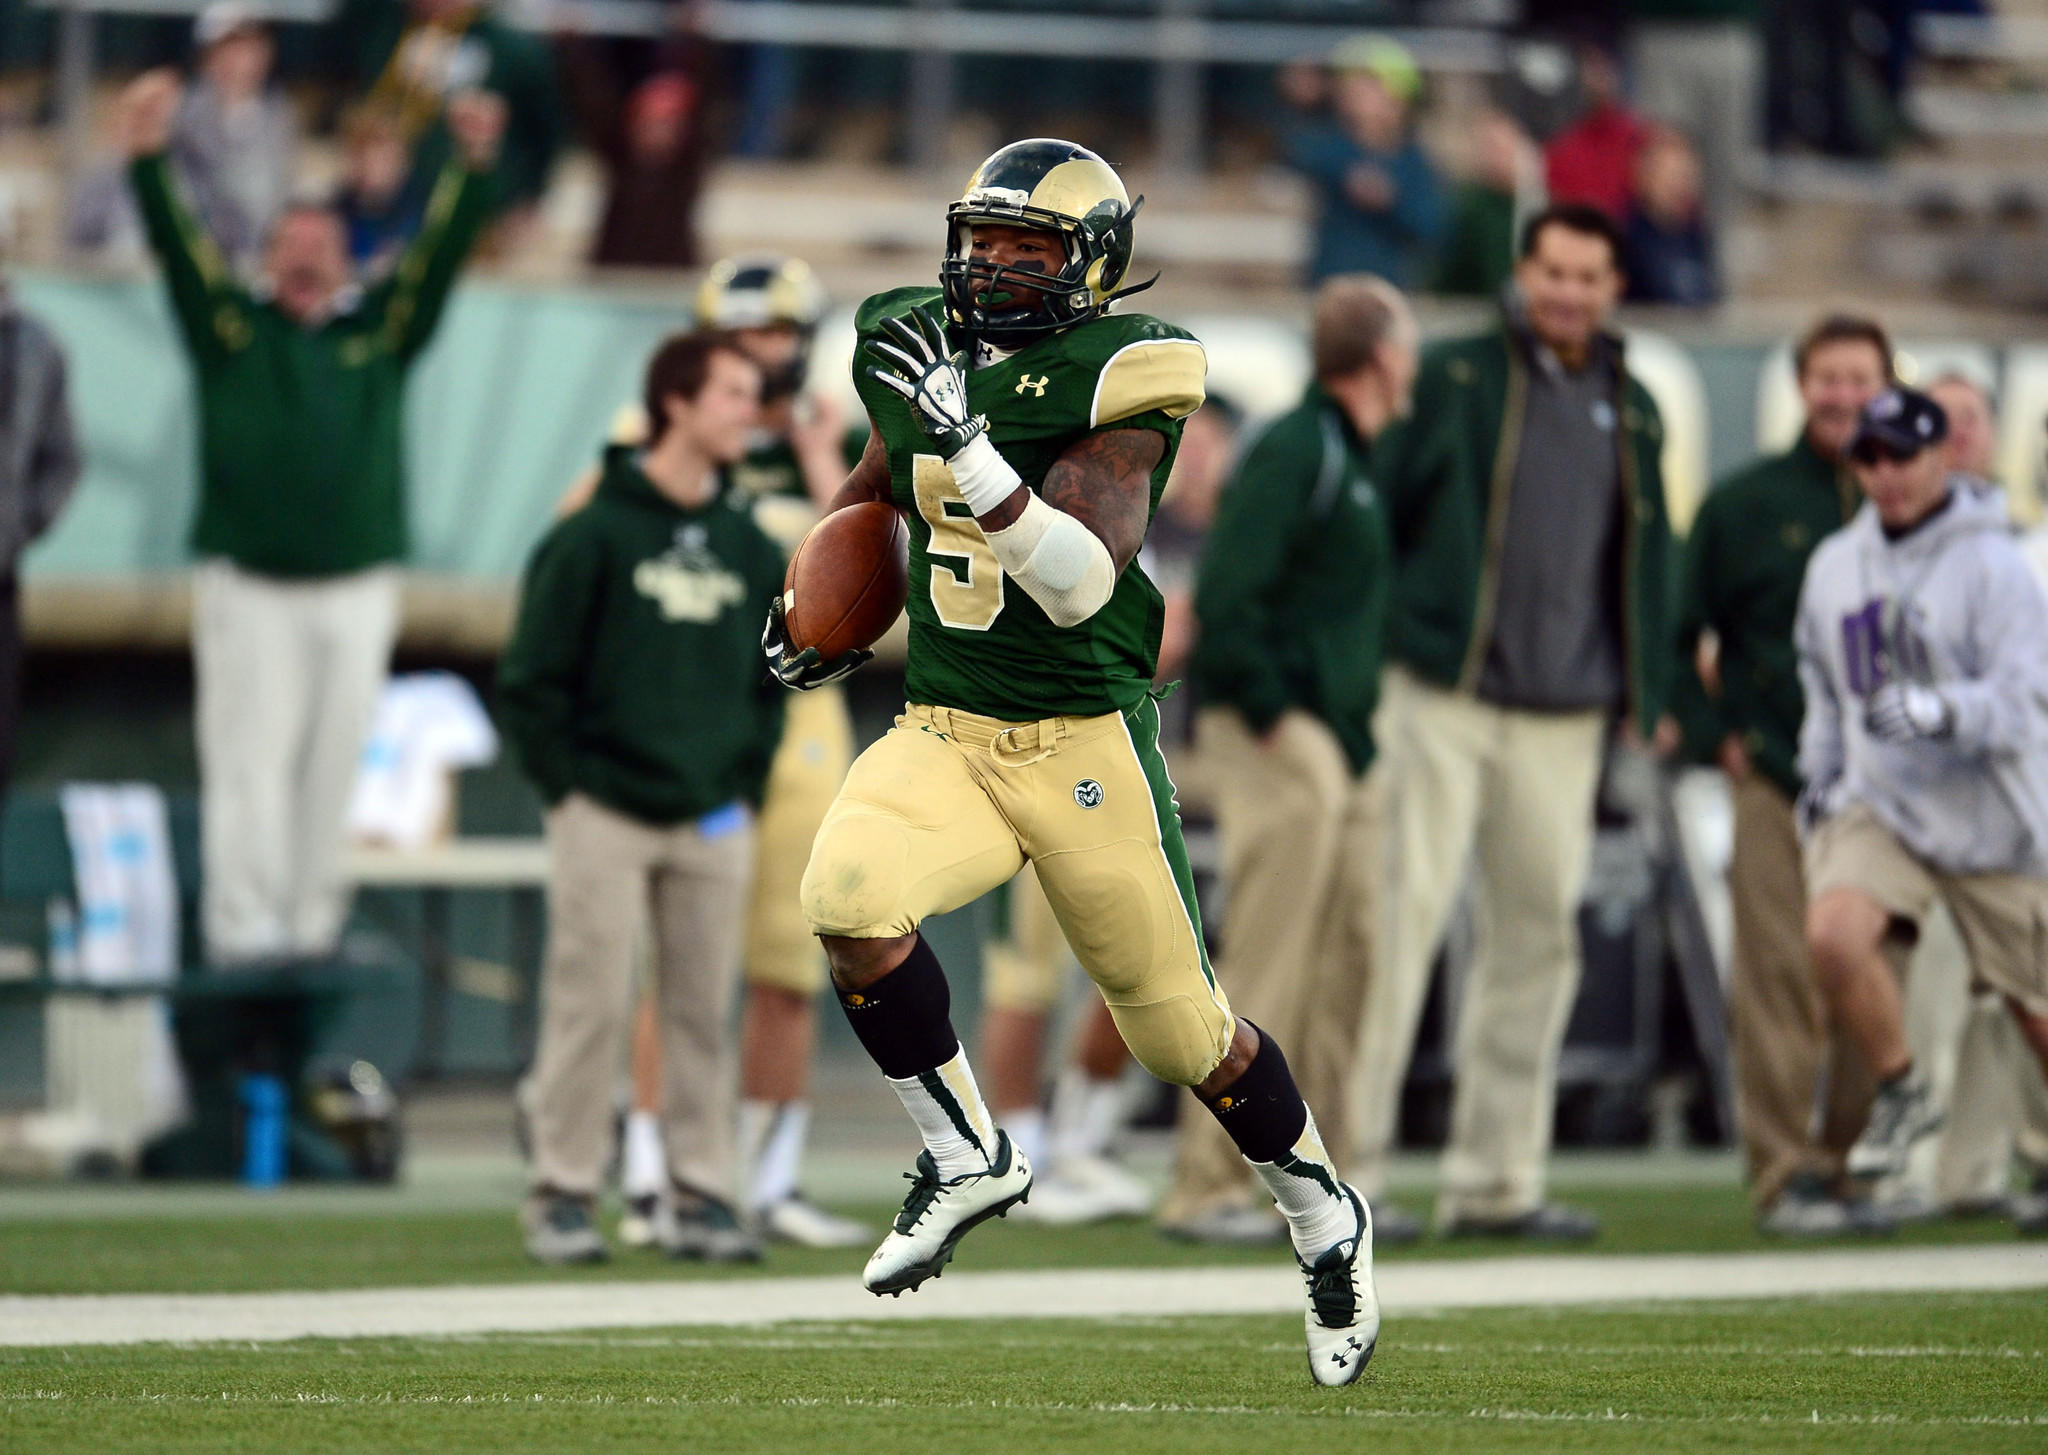 Colorado State Rams running back Kapri Bibbs (5) runs for a eighty five yard touchdown in the fourth quarter at Hughes Stadium. The Rams defeated the Wolf Pack 38-17.